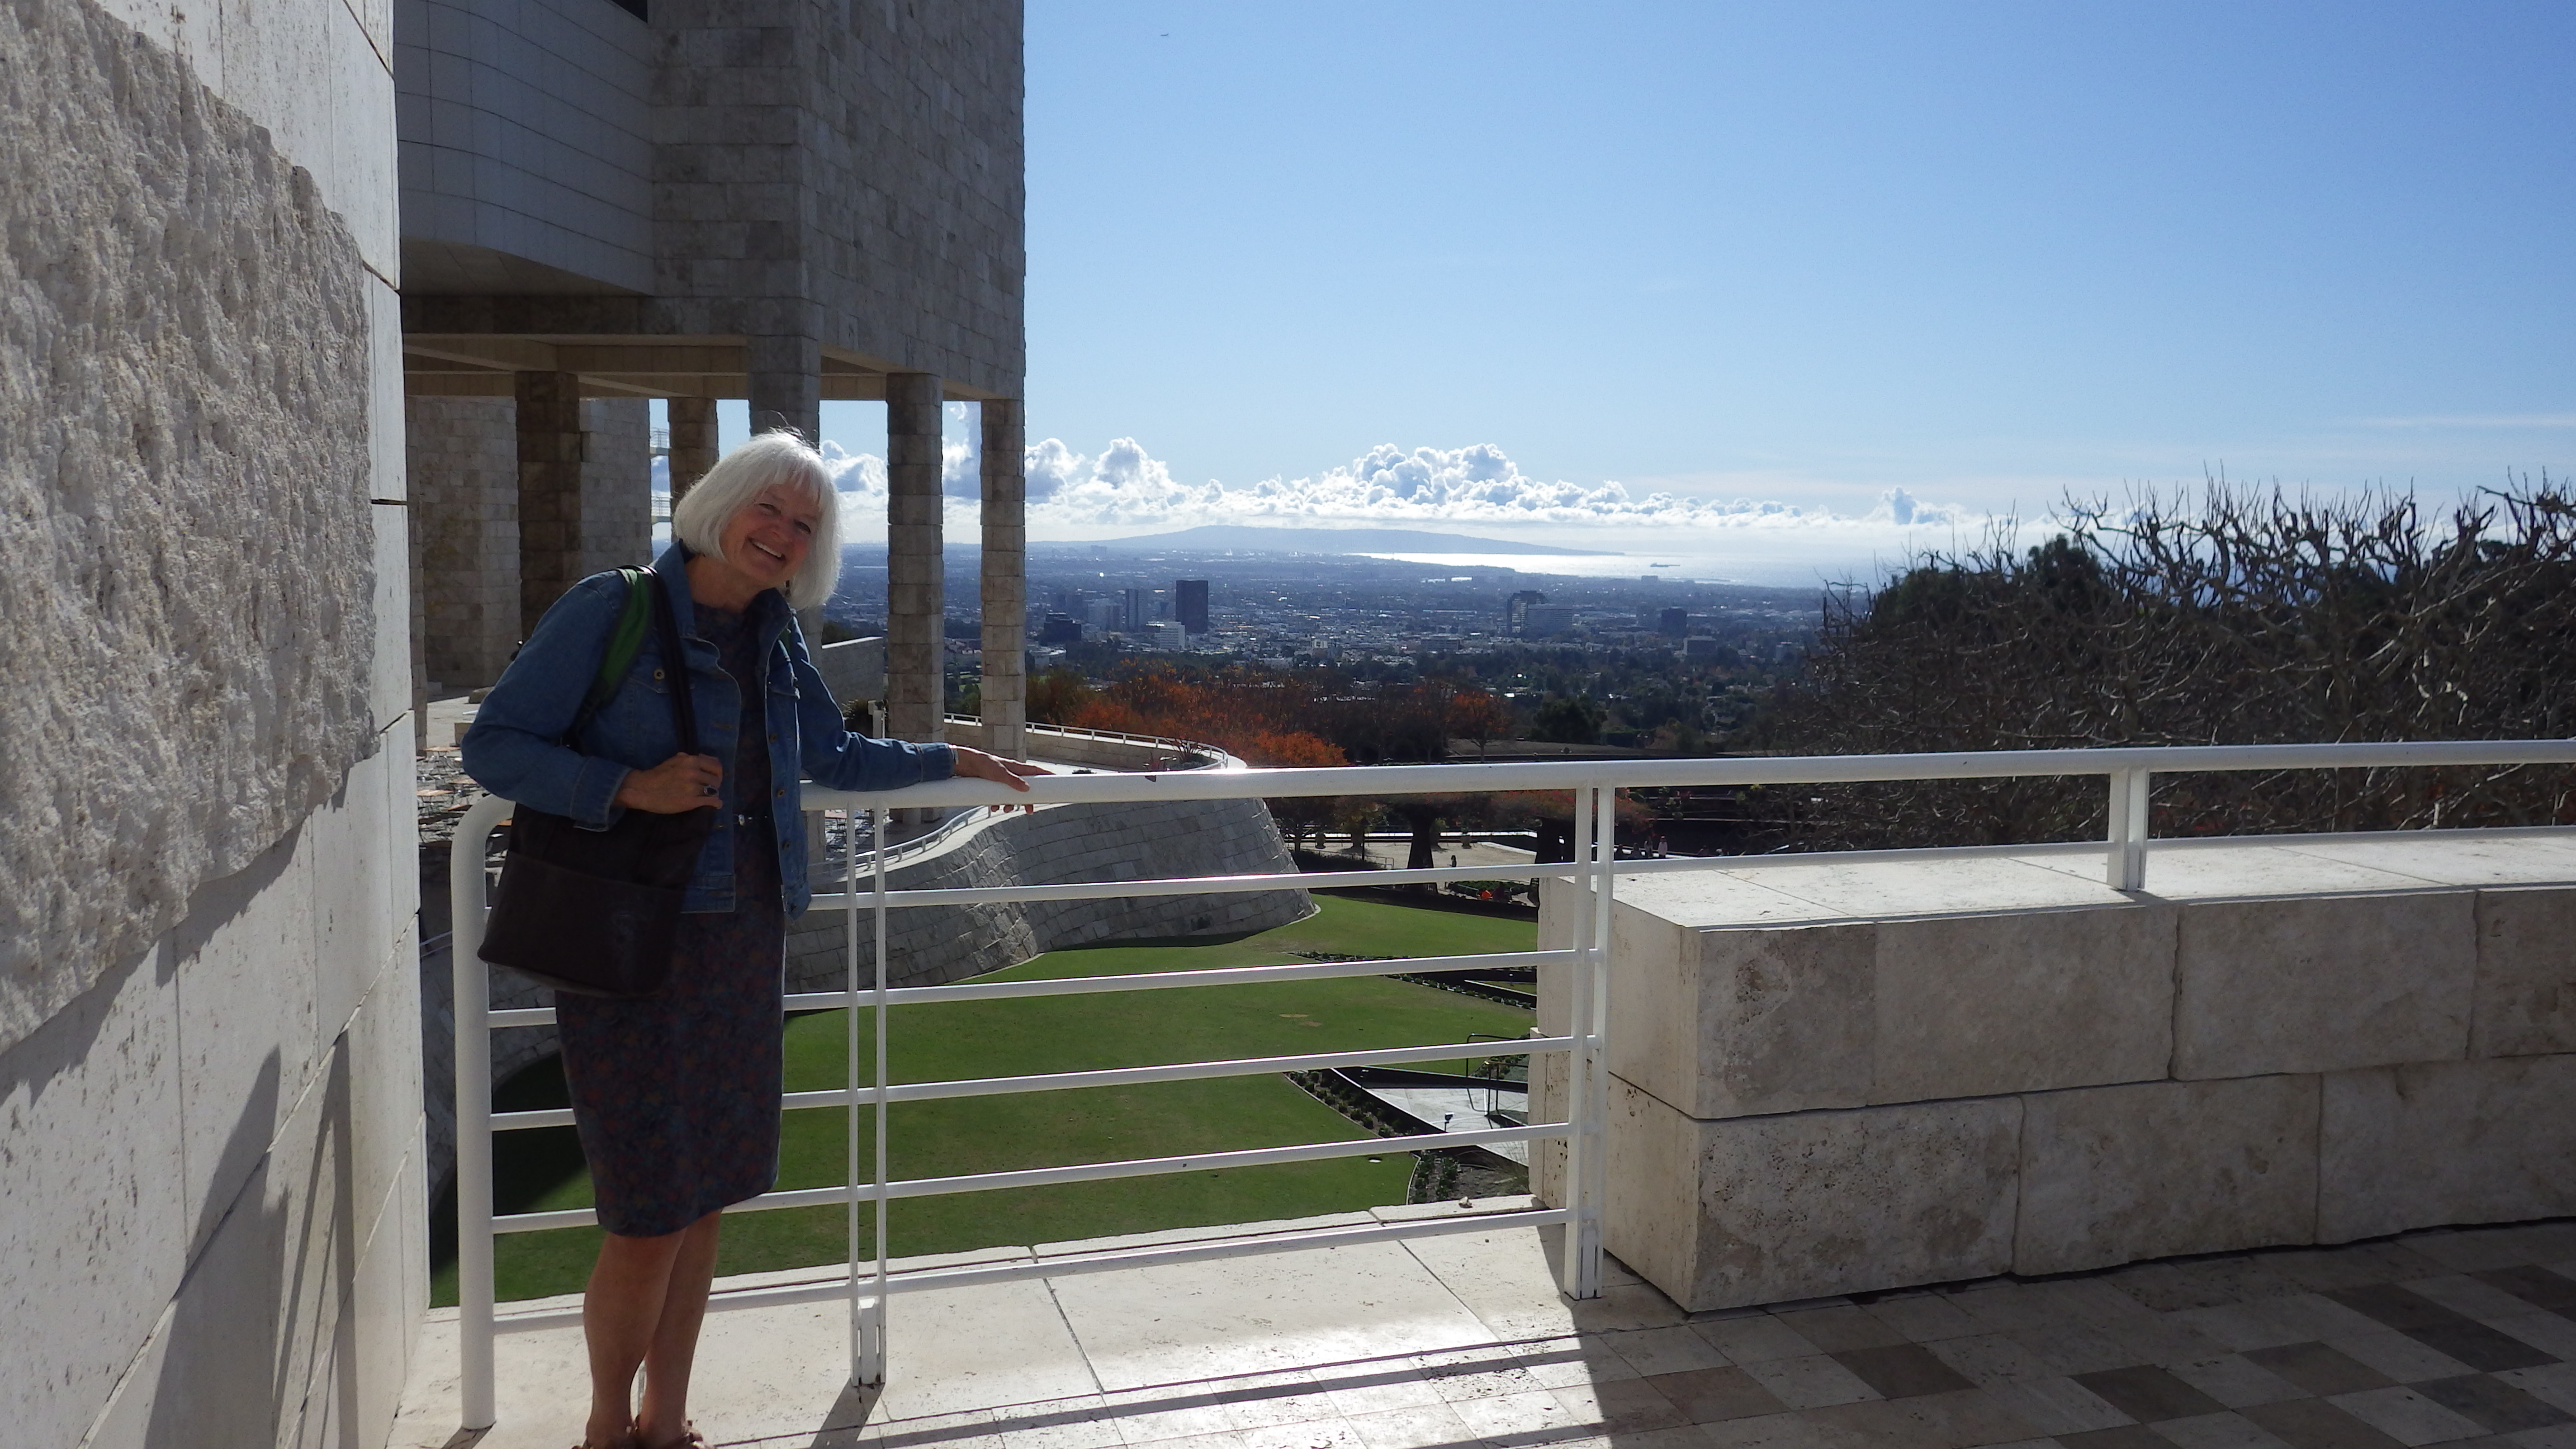 Marion at the Getty